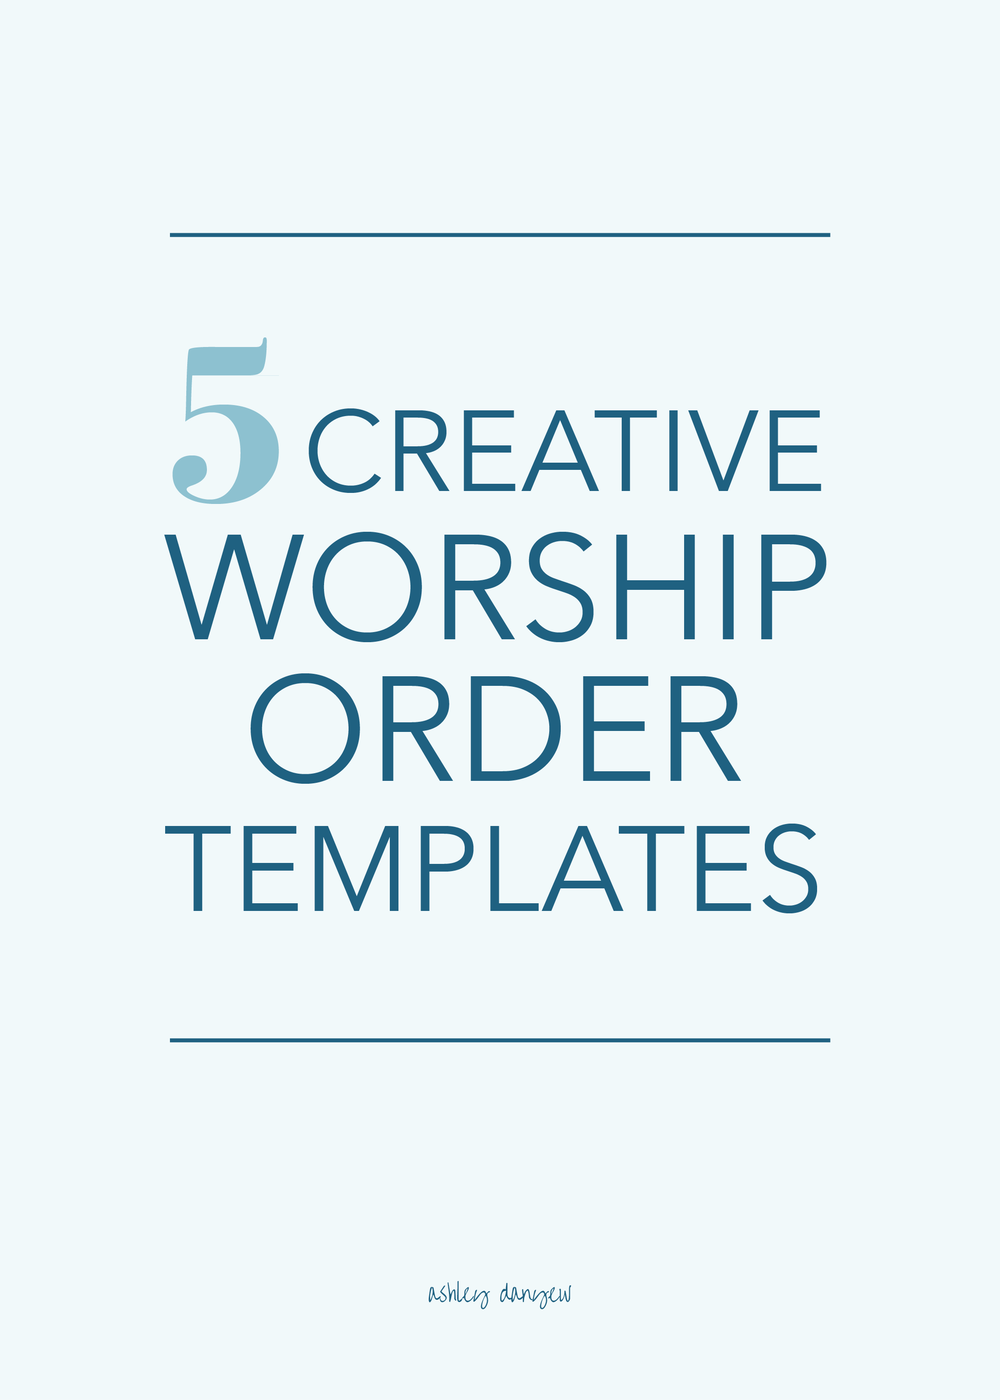 5-Creative-Worship-Order-Templates-01.png